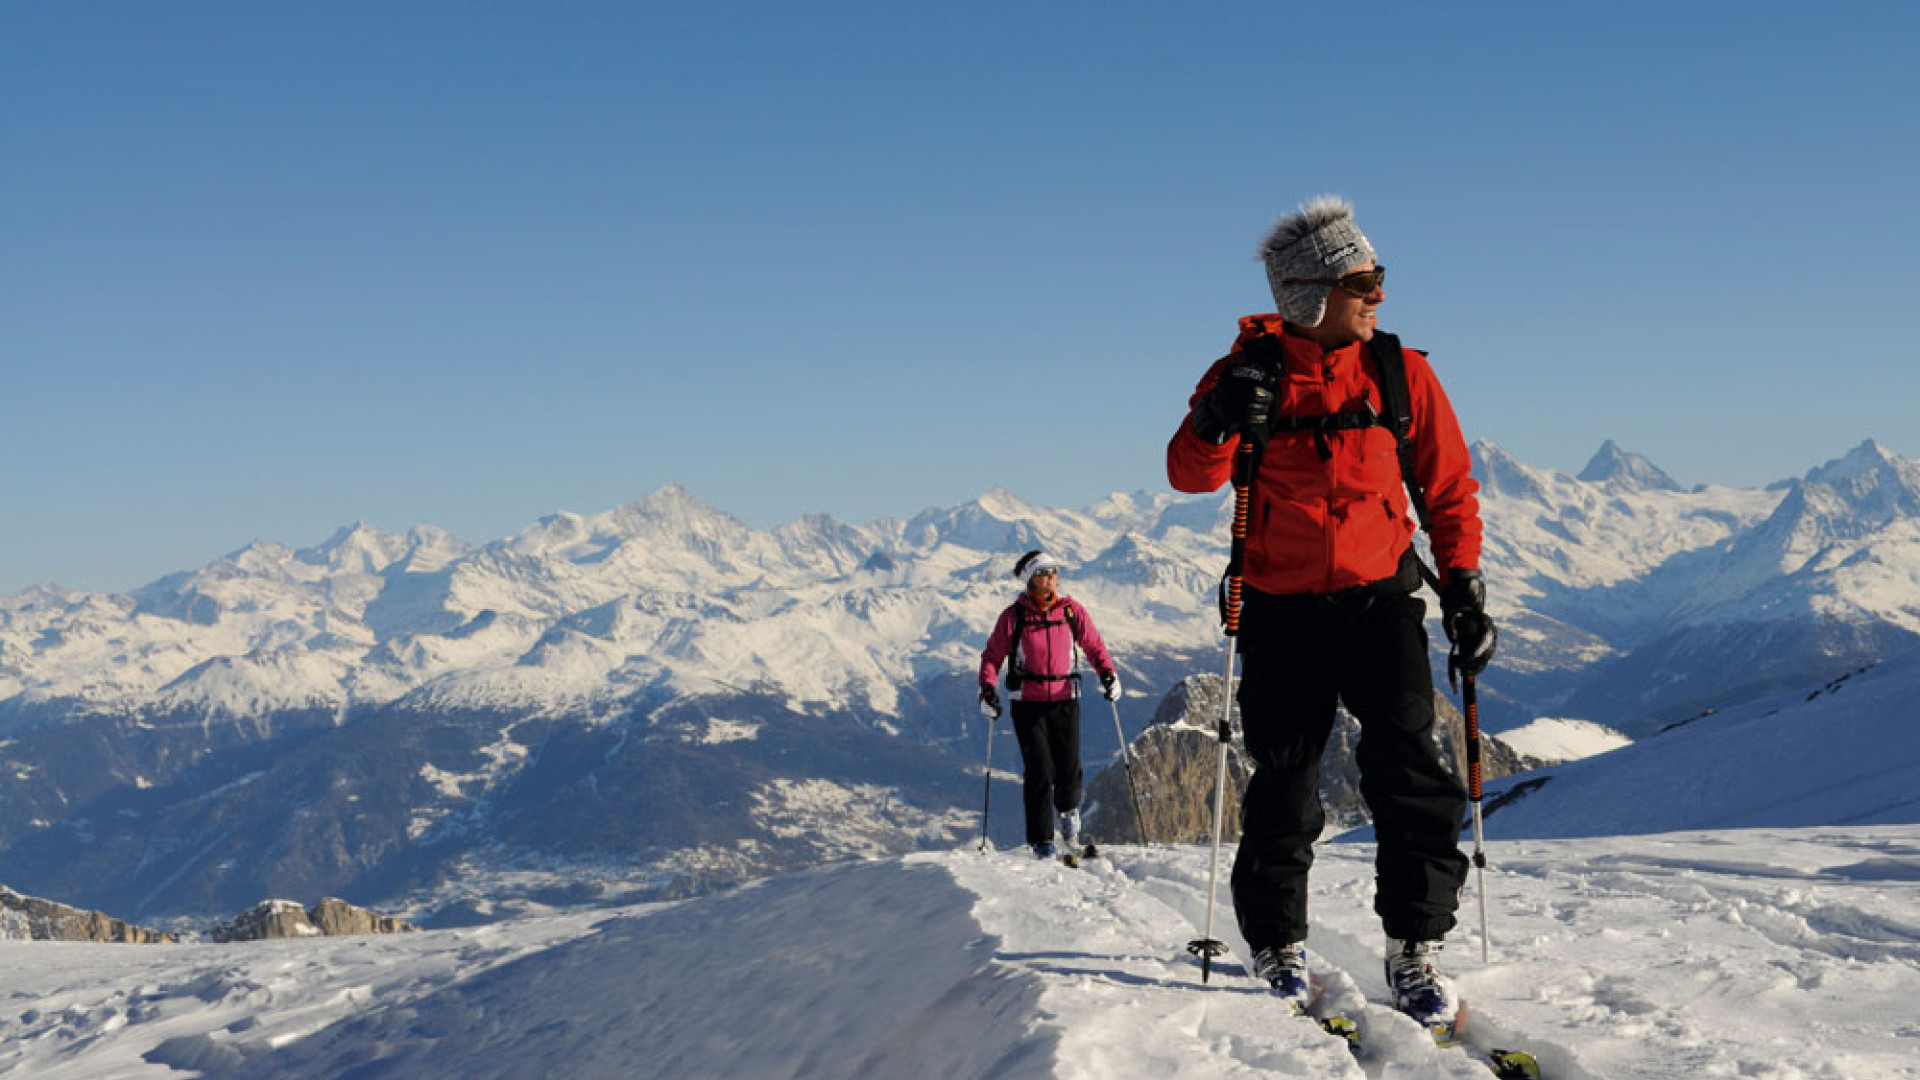 Ski mountain climbers, Les Diableretes, skiing area Glacier 3000, Gstaad, West Alps, Bernese upper country, Switzerland, Europe